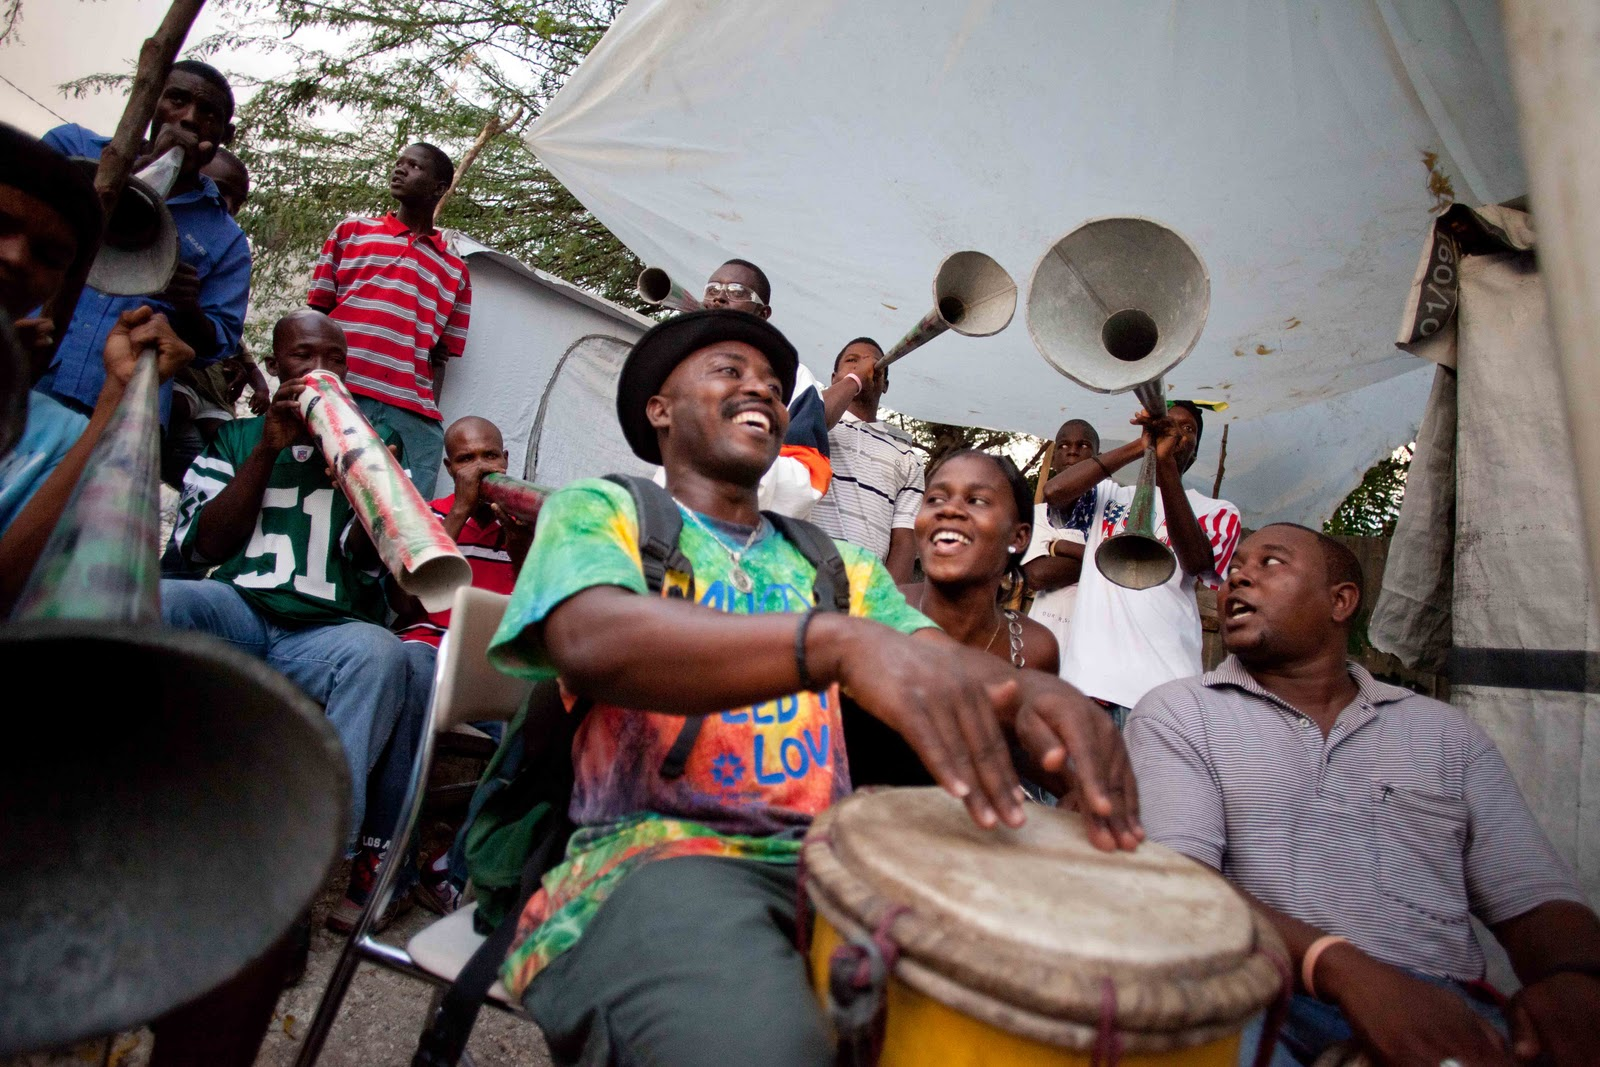 haitian culture Culture (photo: richardson dorvil) haiti has a diverse cultural heritage that draws upon french, spanish, and african traditions as well as caribbean island culture.